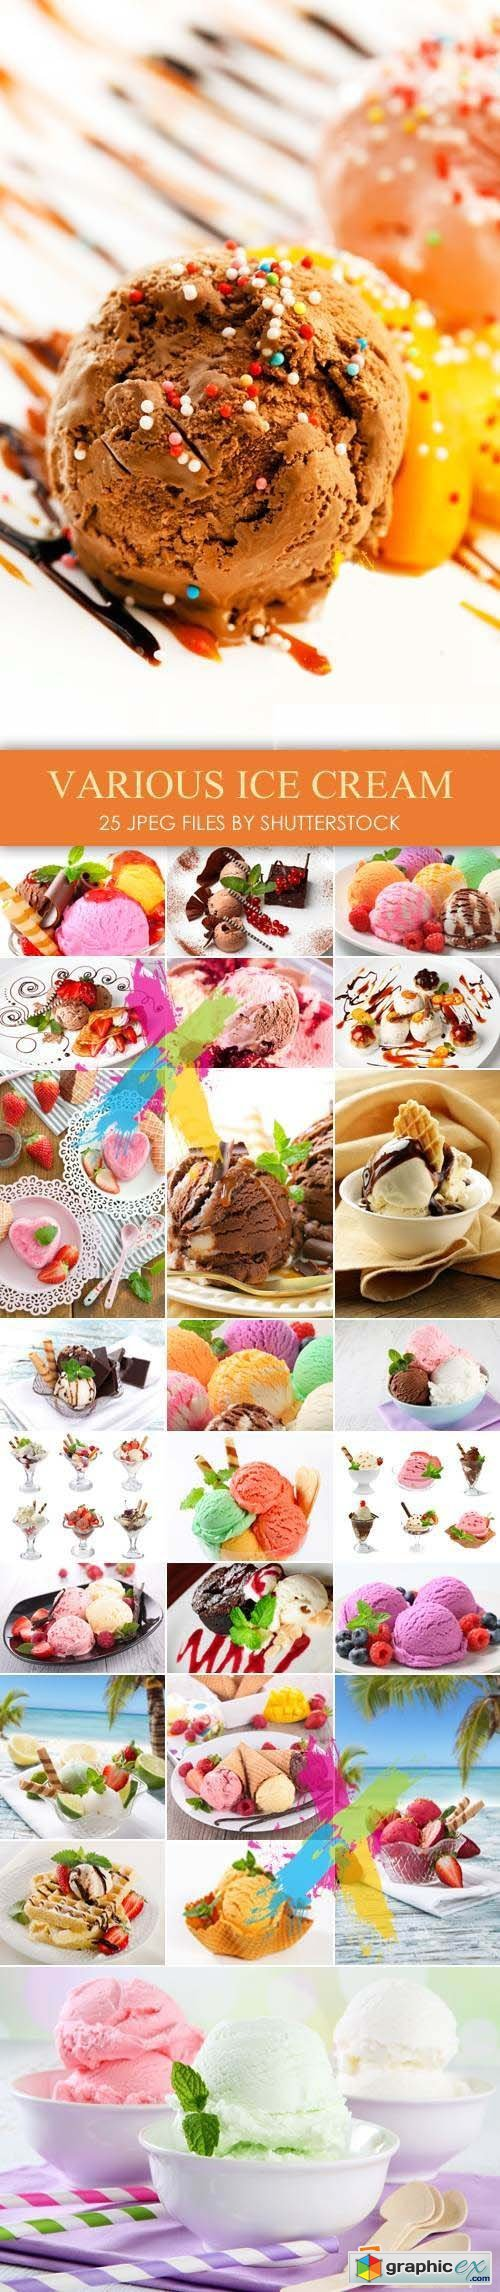 Stock Photo - Fruit, Chocolate, White Ice Cream